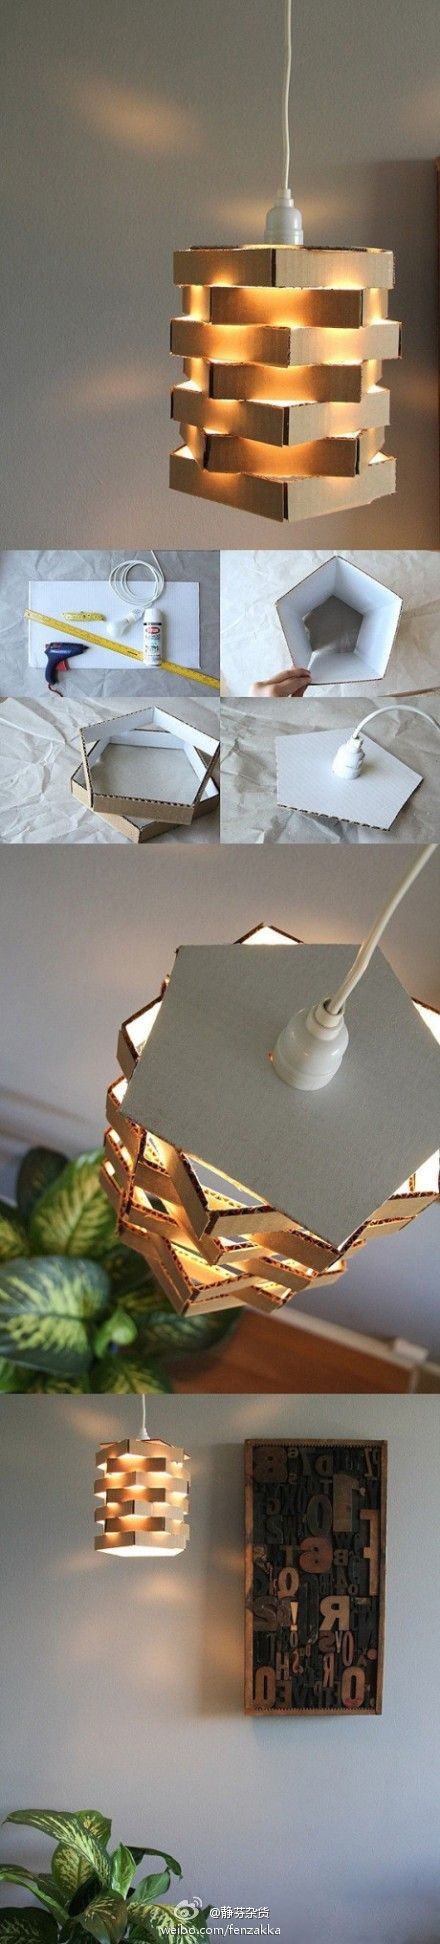 diy, diy home, diy home decorating on a budget, diy lamp: